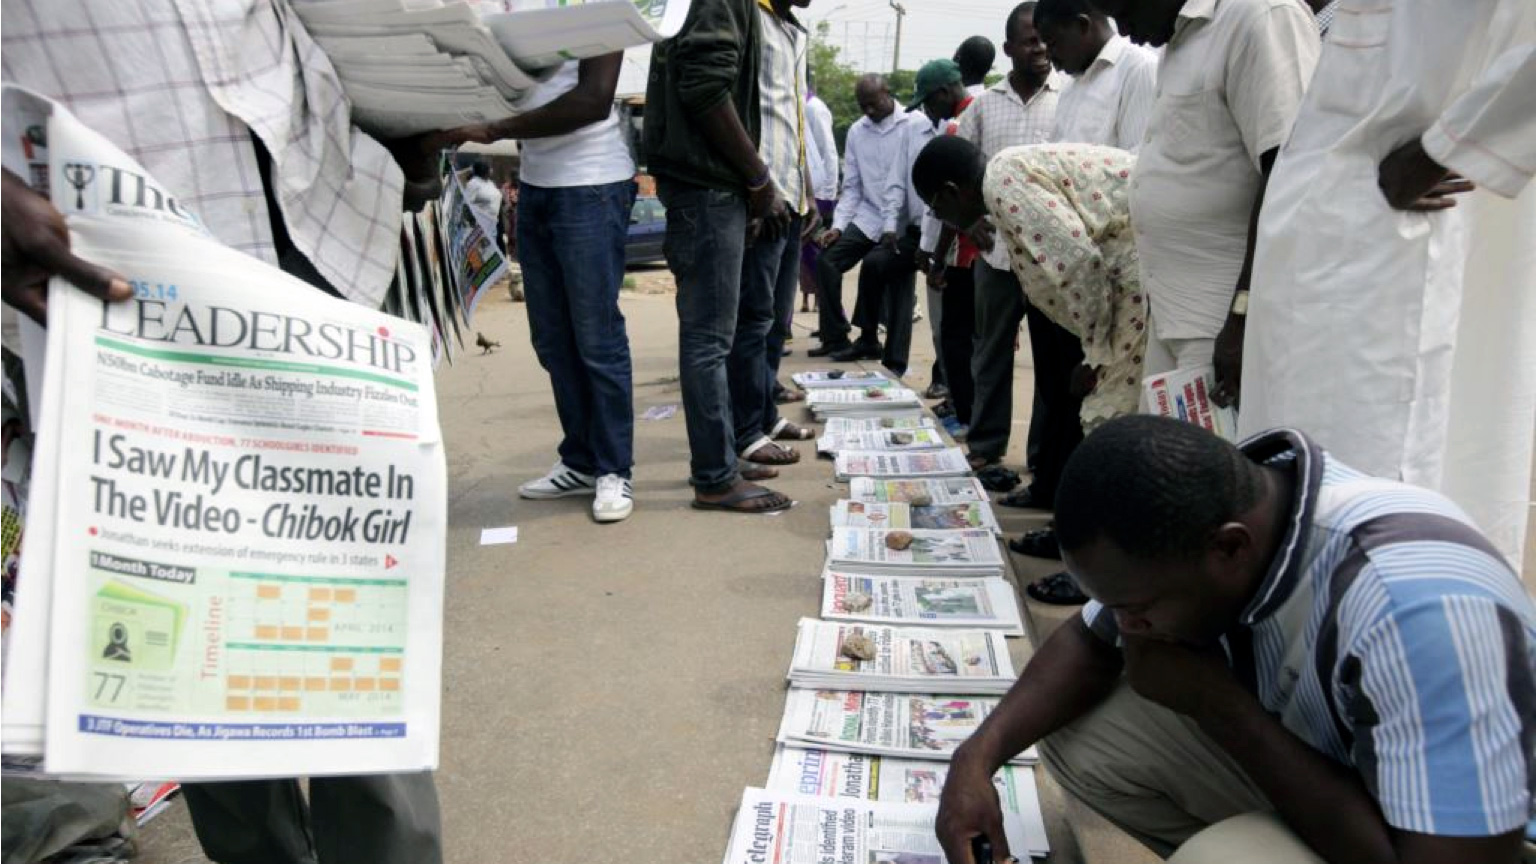 In some African countries, it's not unusual to see crowds reading newspapers that have been laid out on sidewalks.